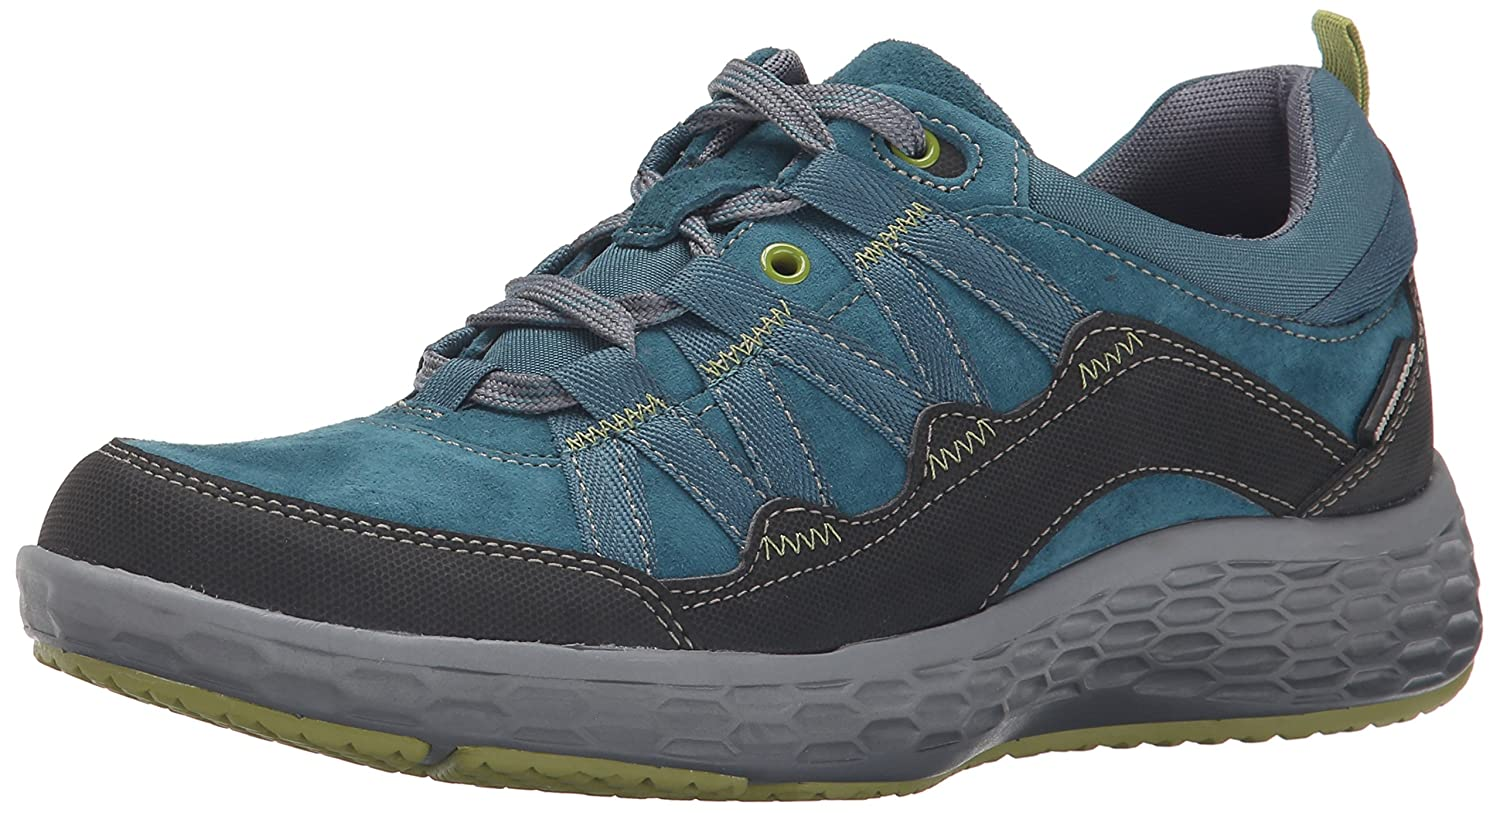 Cobb Hill Rockport Women's Freshexcel Waterproof Flat B00SK54Q5W 9 B(M) US|Teal